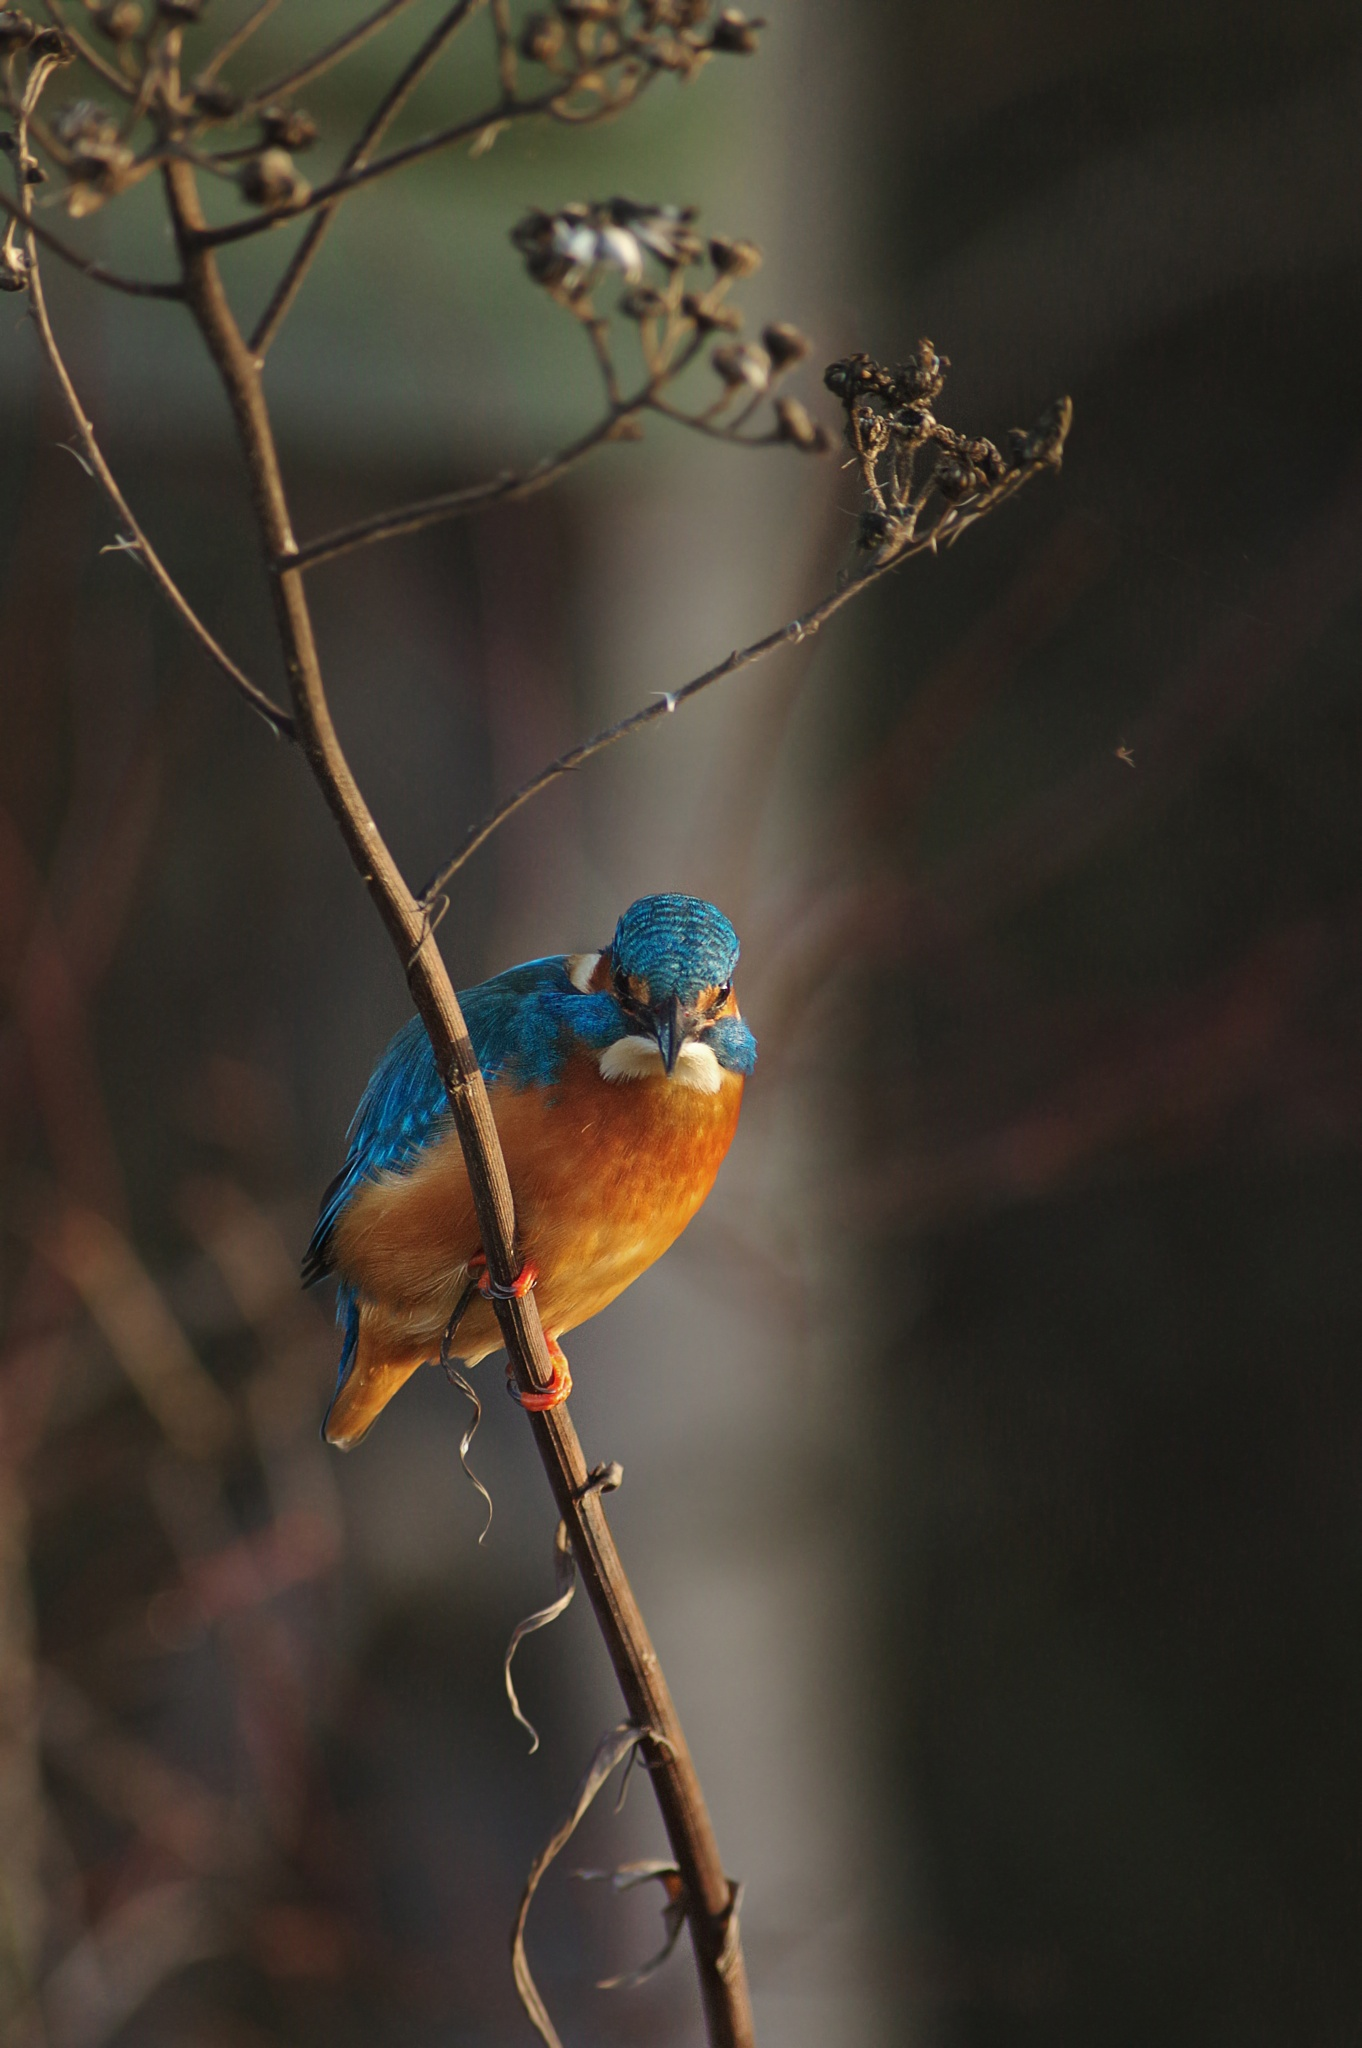 kingfisher by ole nørholm